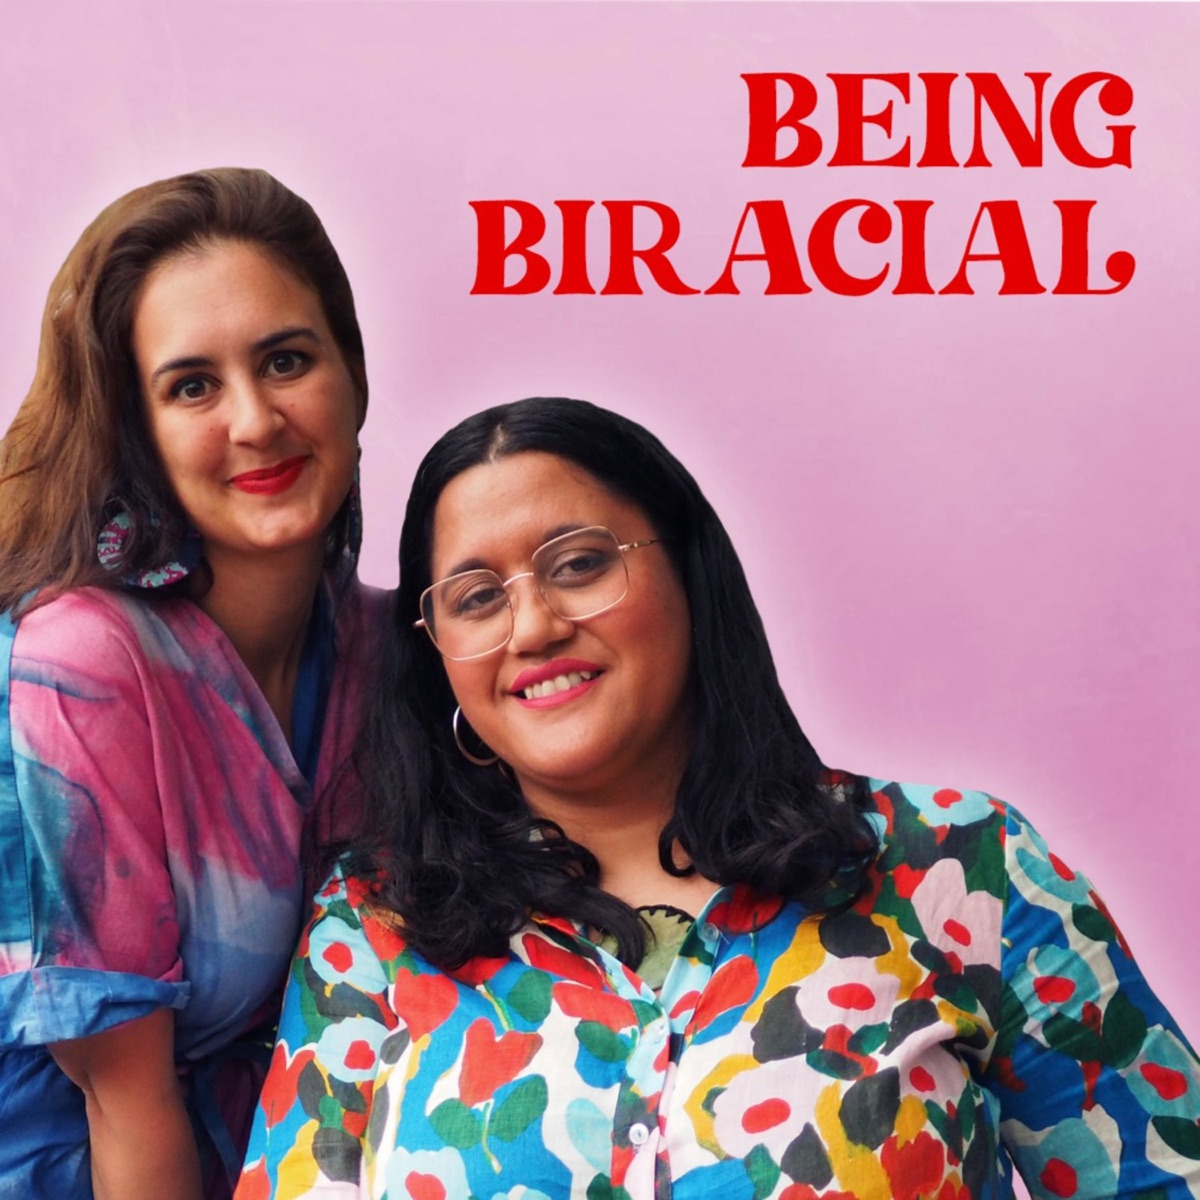 Being Biracial Podcast. Image: Being Biracial